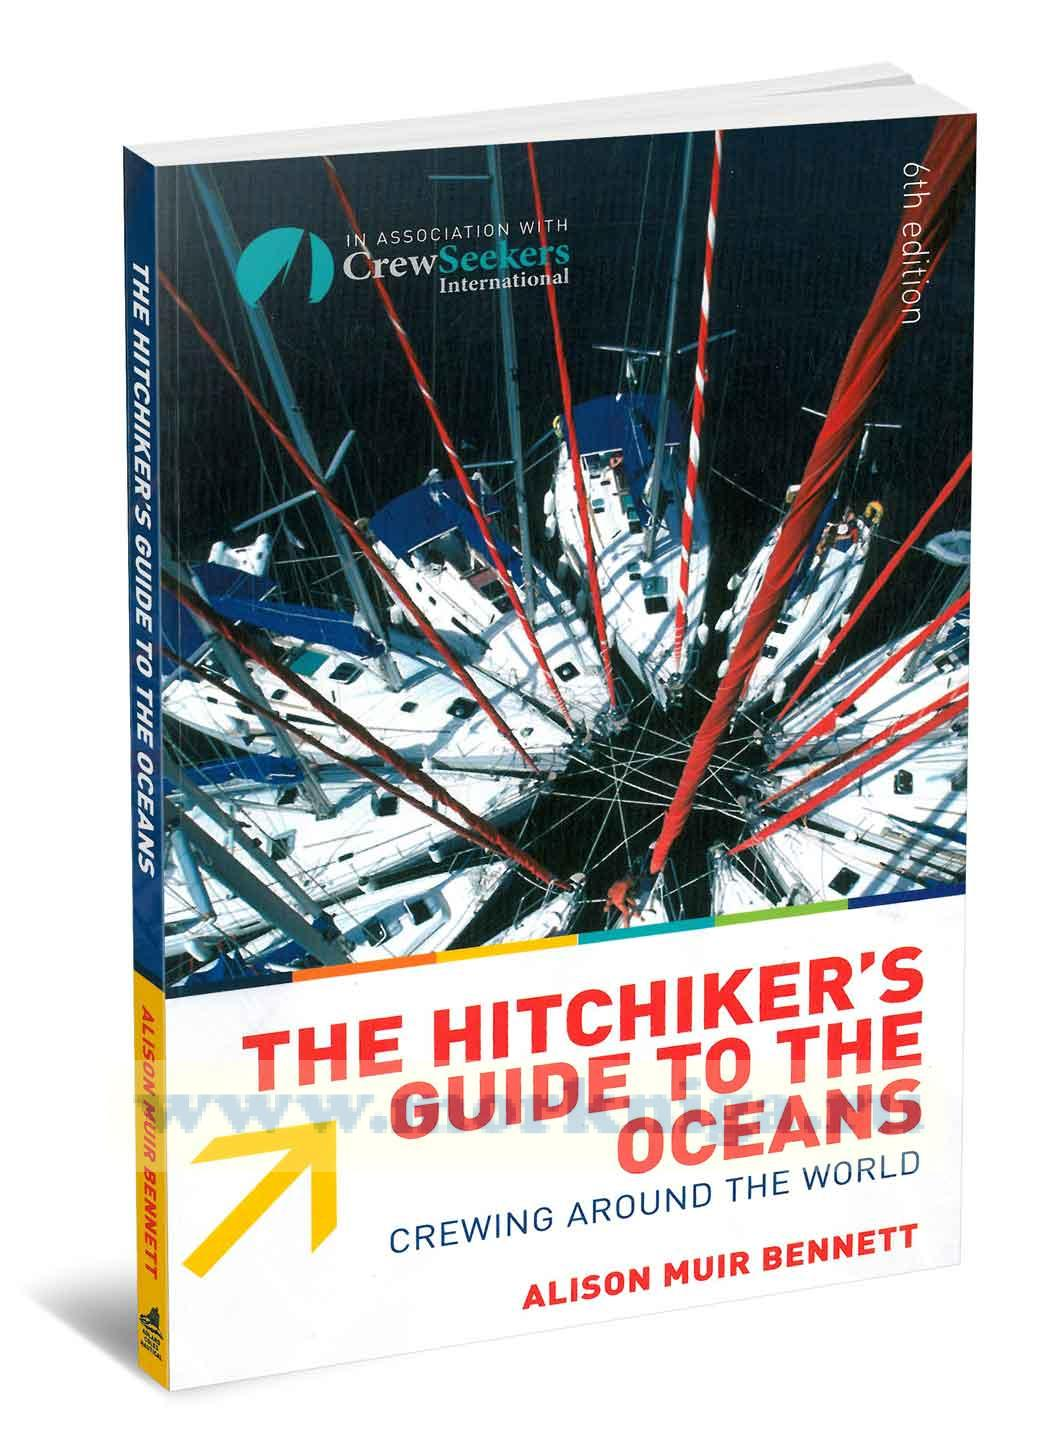 The Hitch-Hikers Guide to the Oceans